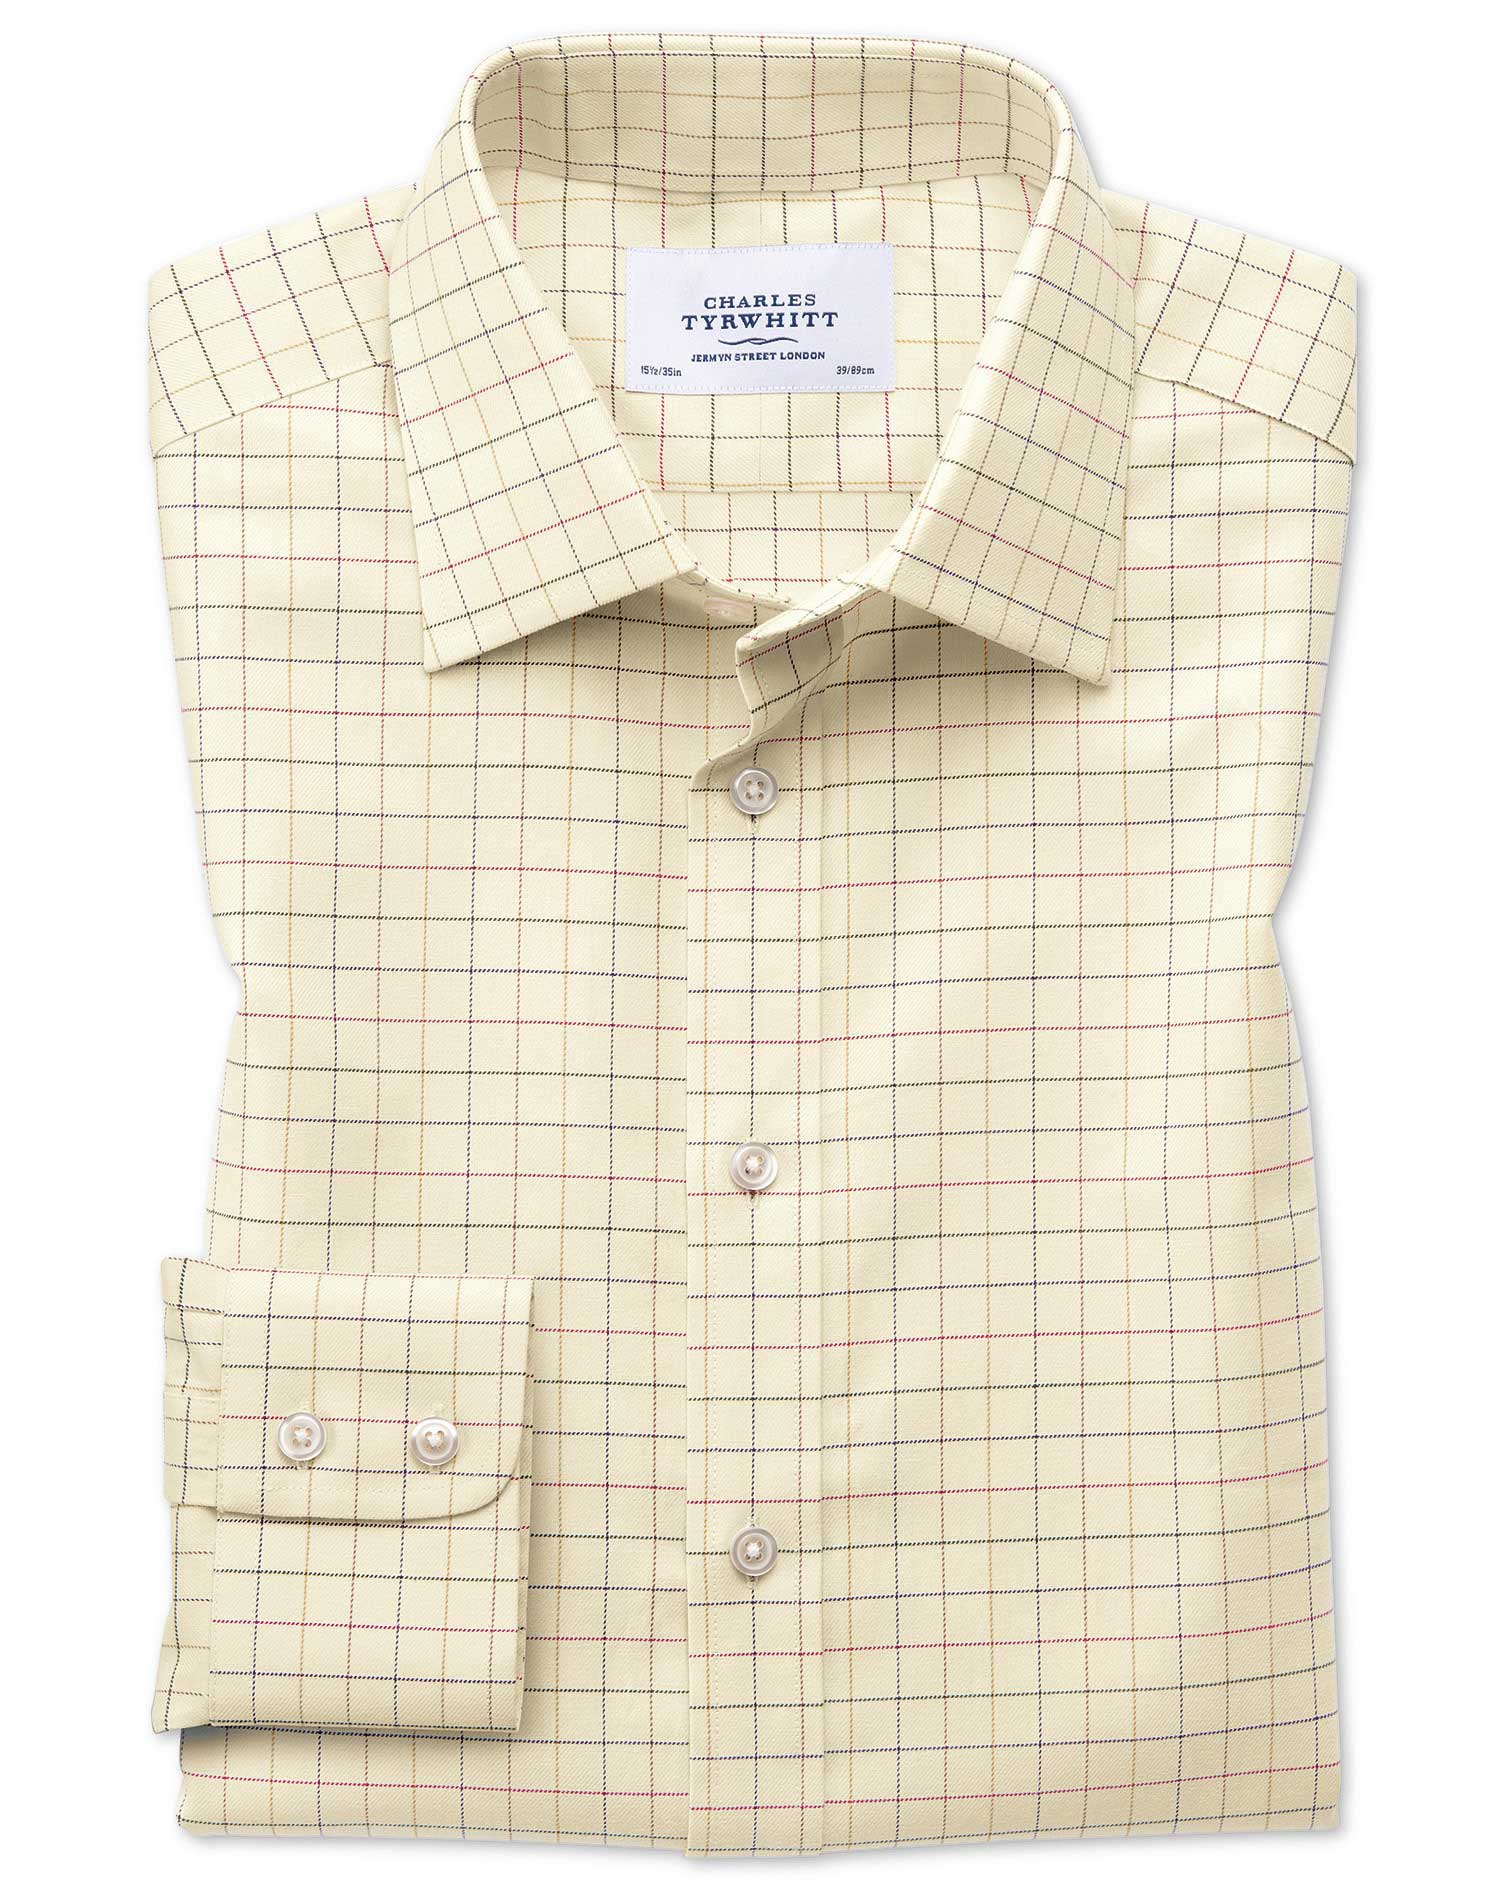 Slim Fit Country Check Multi Cotton Formal Shirt Single Cuff Size 16/36 by Charles Tyrwhitt